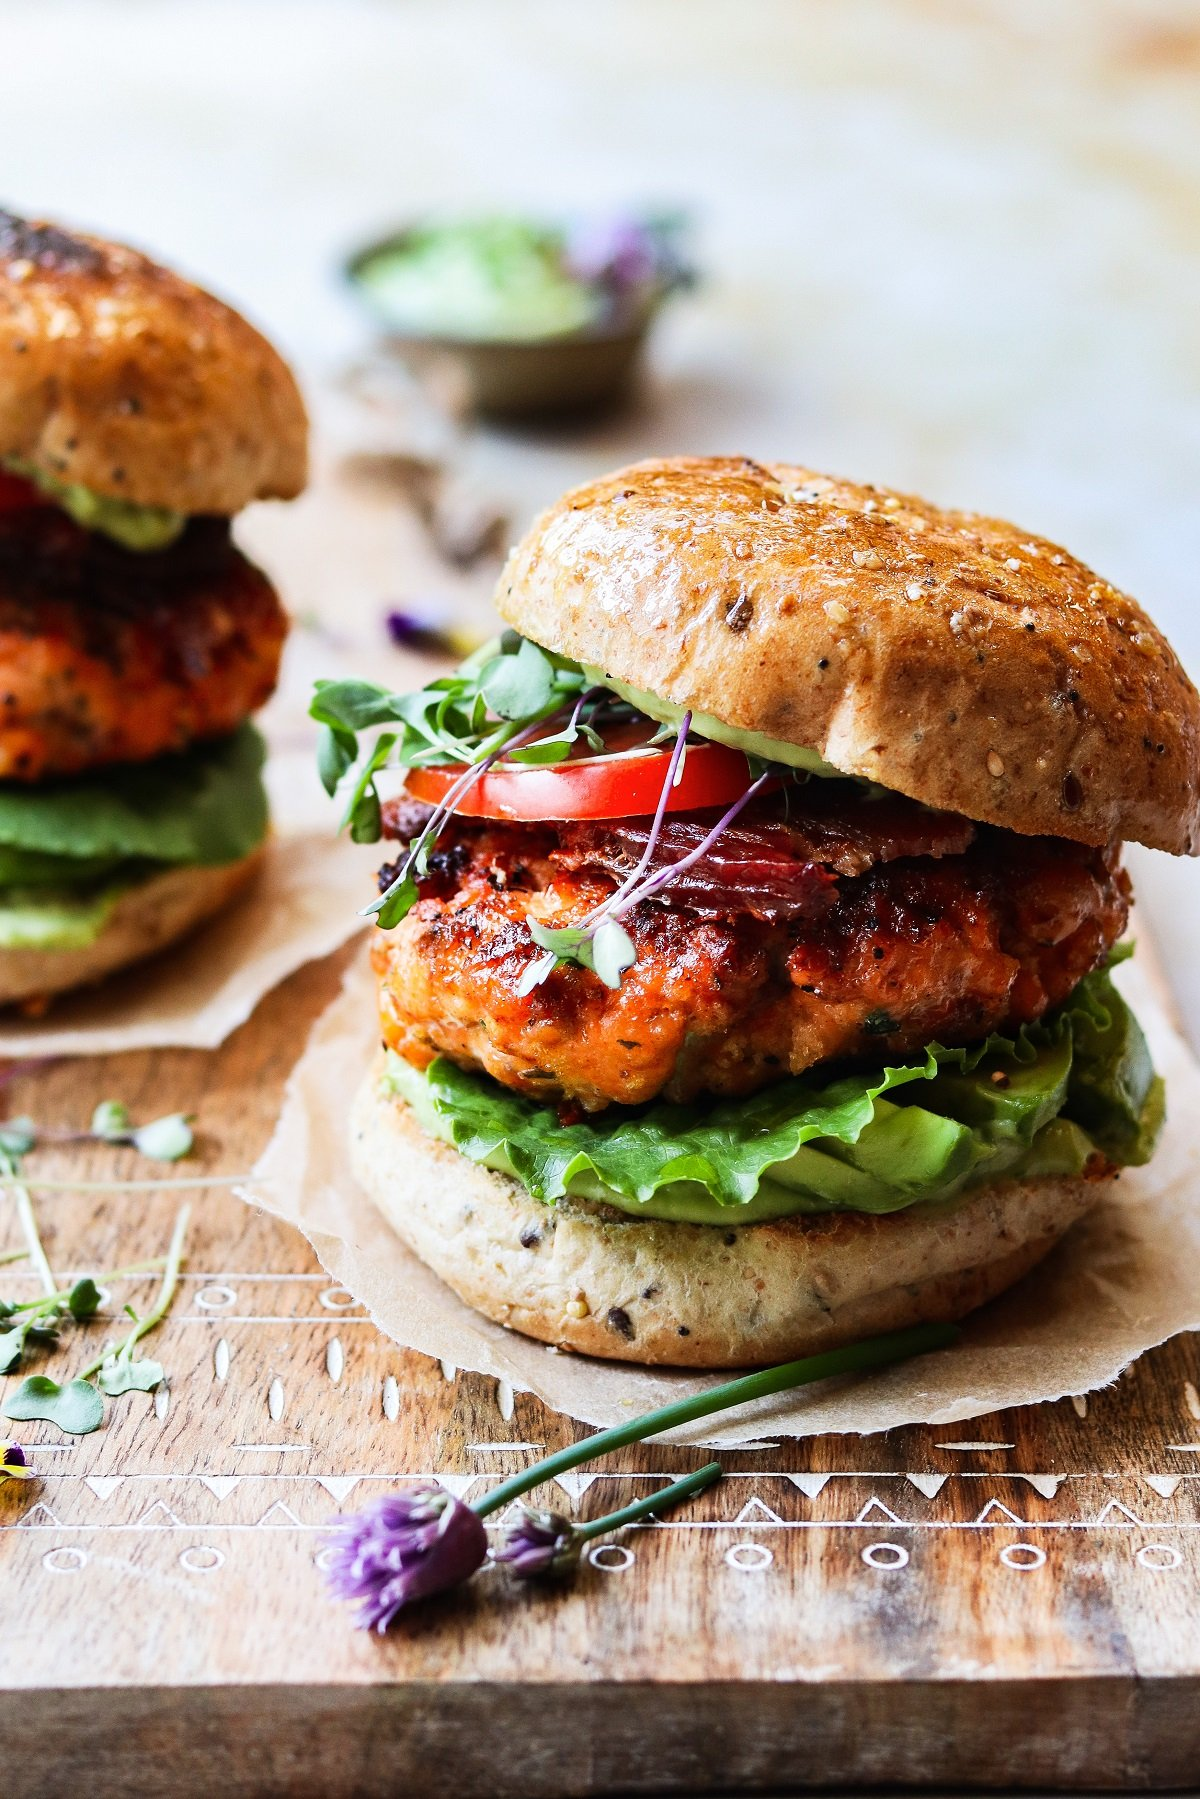 Easy, delicious and tender fresh salmon burgers seared to perfection and topped with a creamy, tangy aioli, crispy bacon, lettuce and tomato all on a toasted bun sitting on a wooden board.